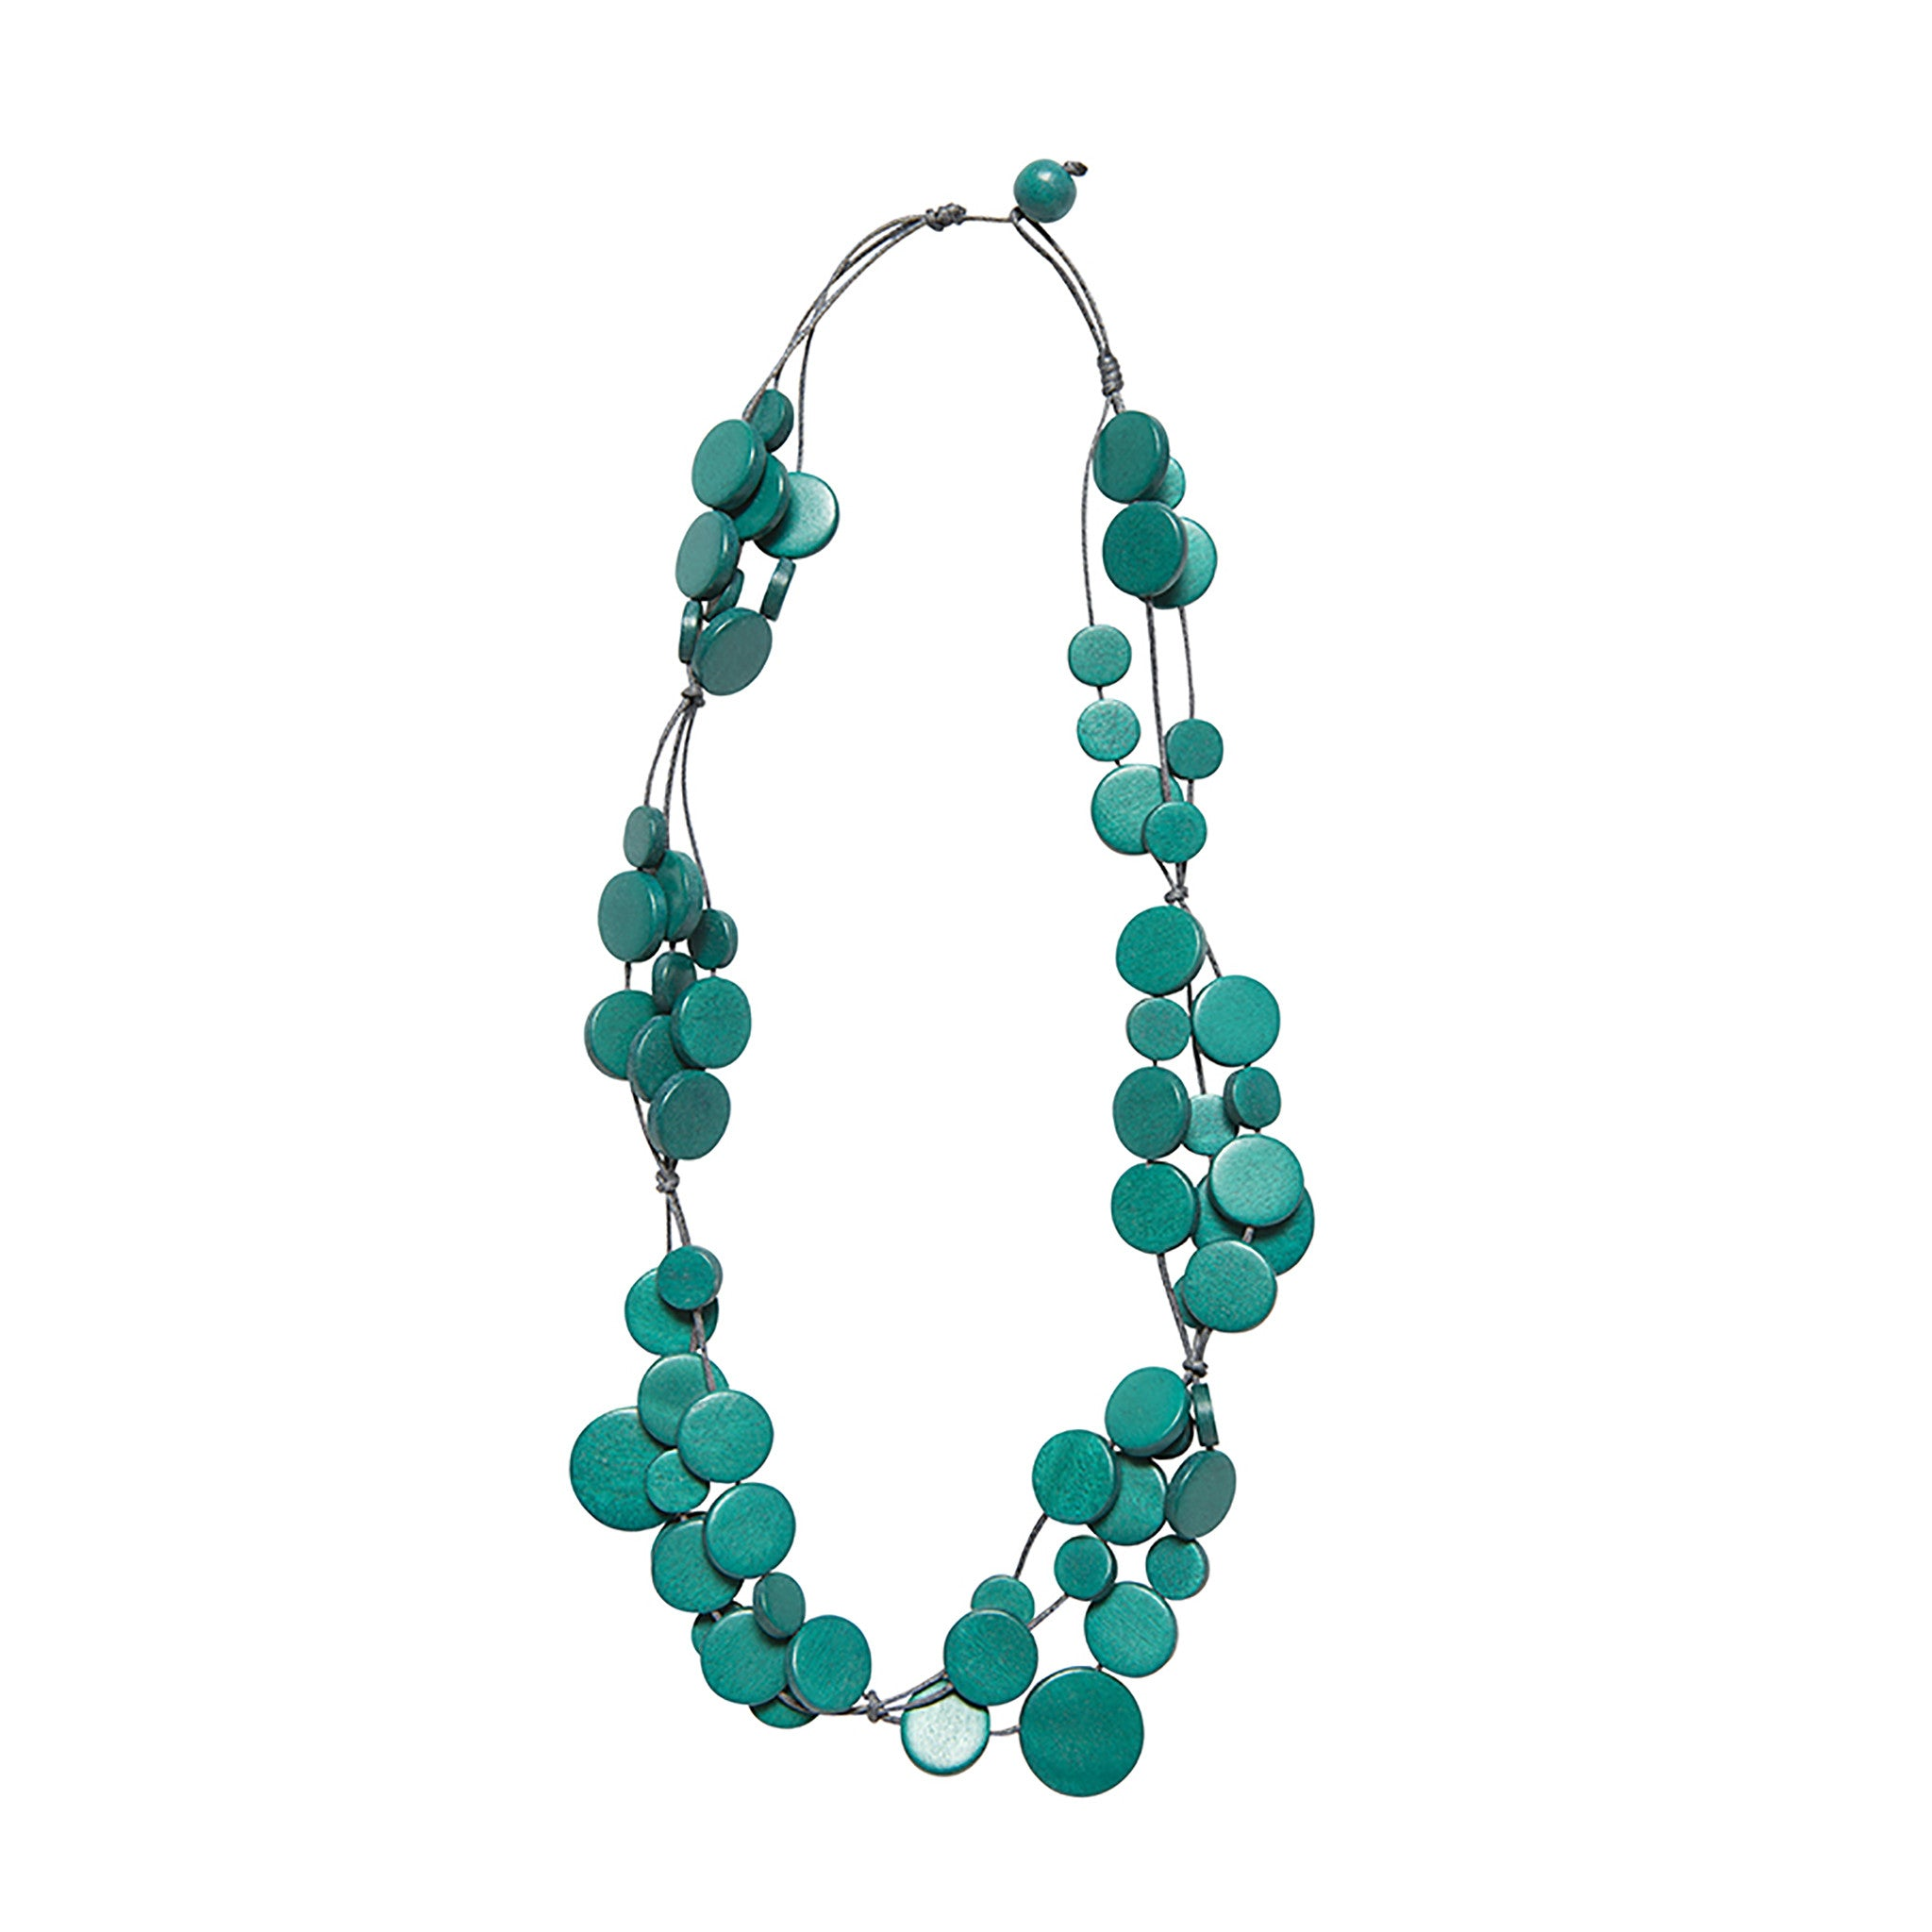 teller and mary turquoise shop necklace everett silver sterling reversible by jewellery